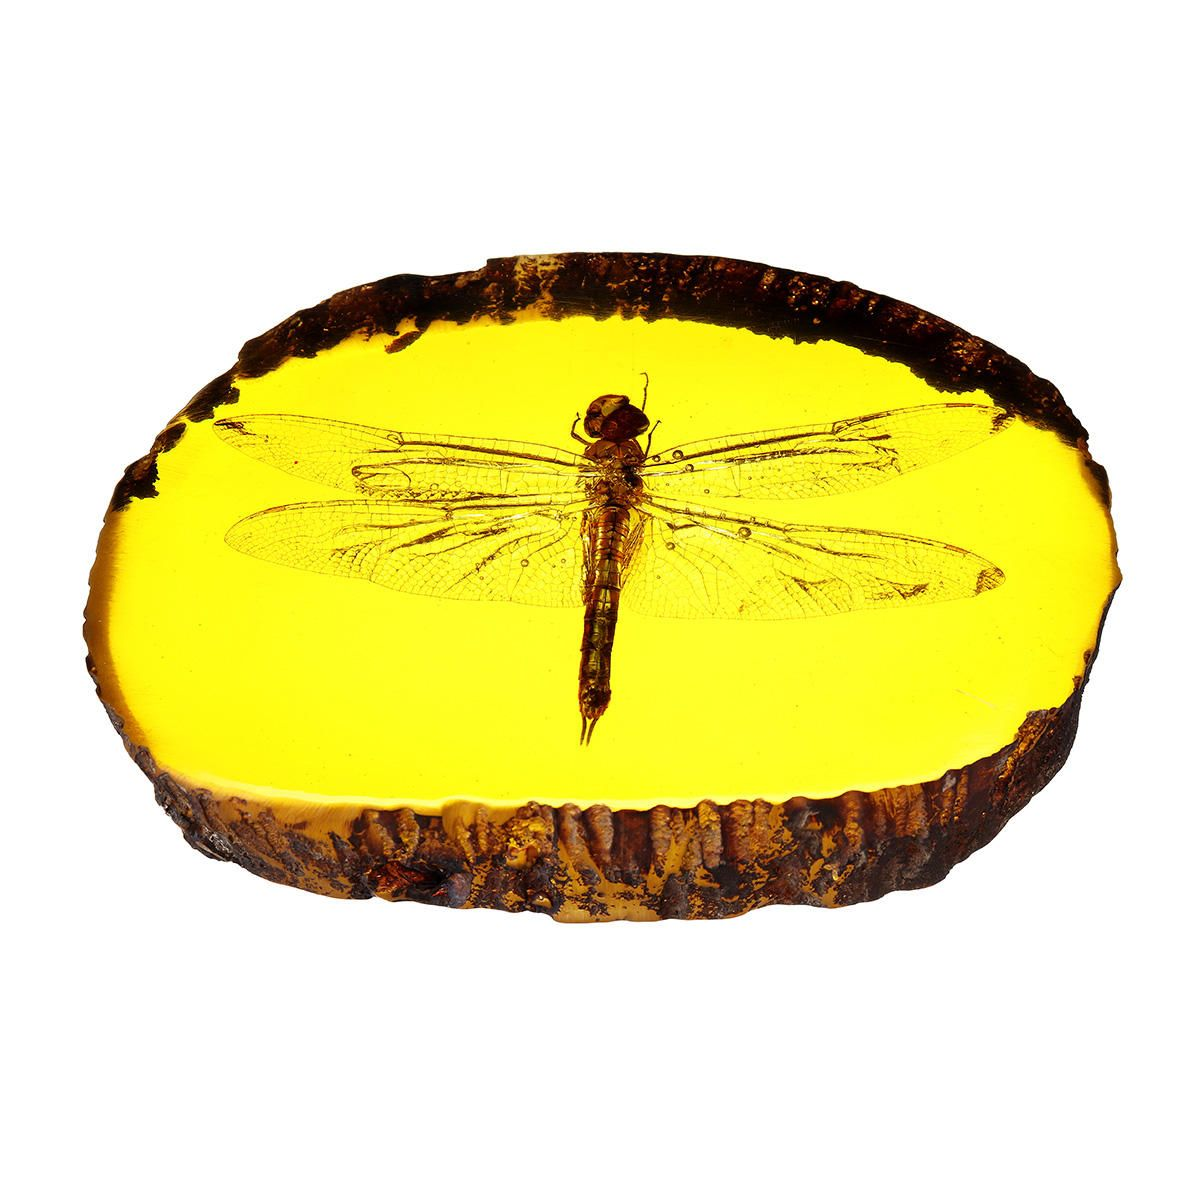 OUG US$9.70 Amber Fossil Insects Dragonfly Manual Polishing Insect Specimens Decorations